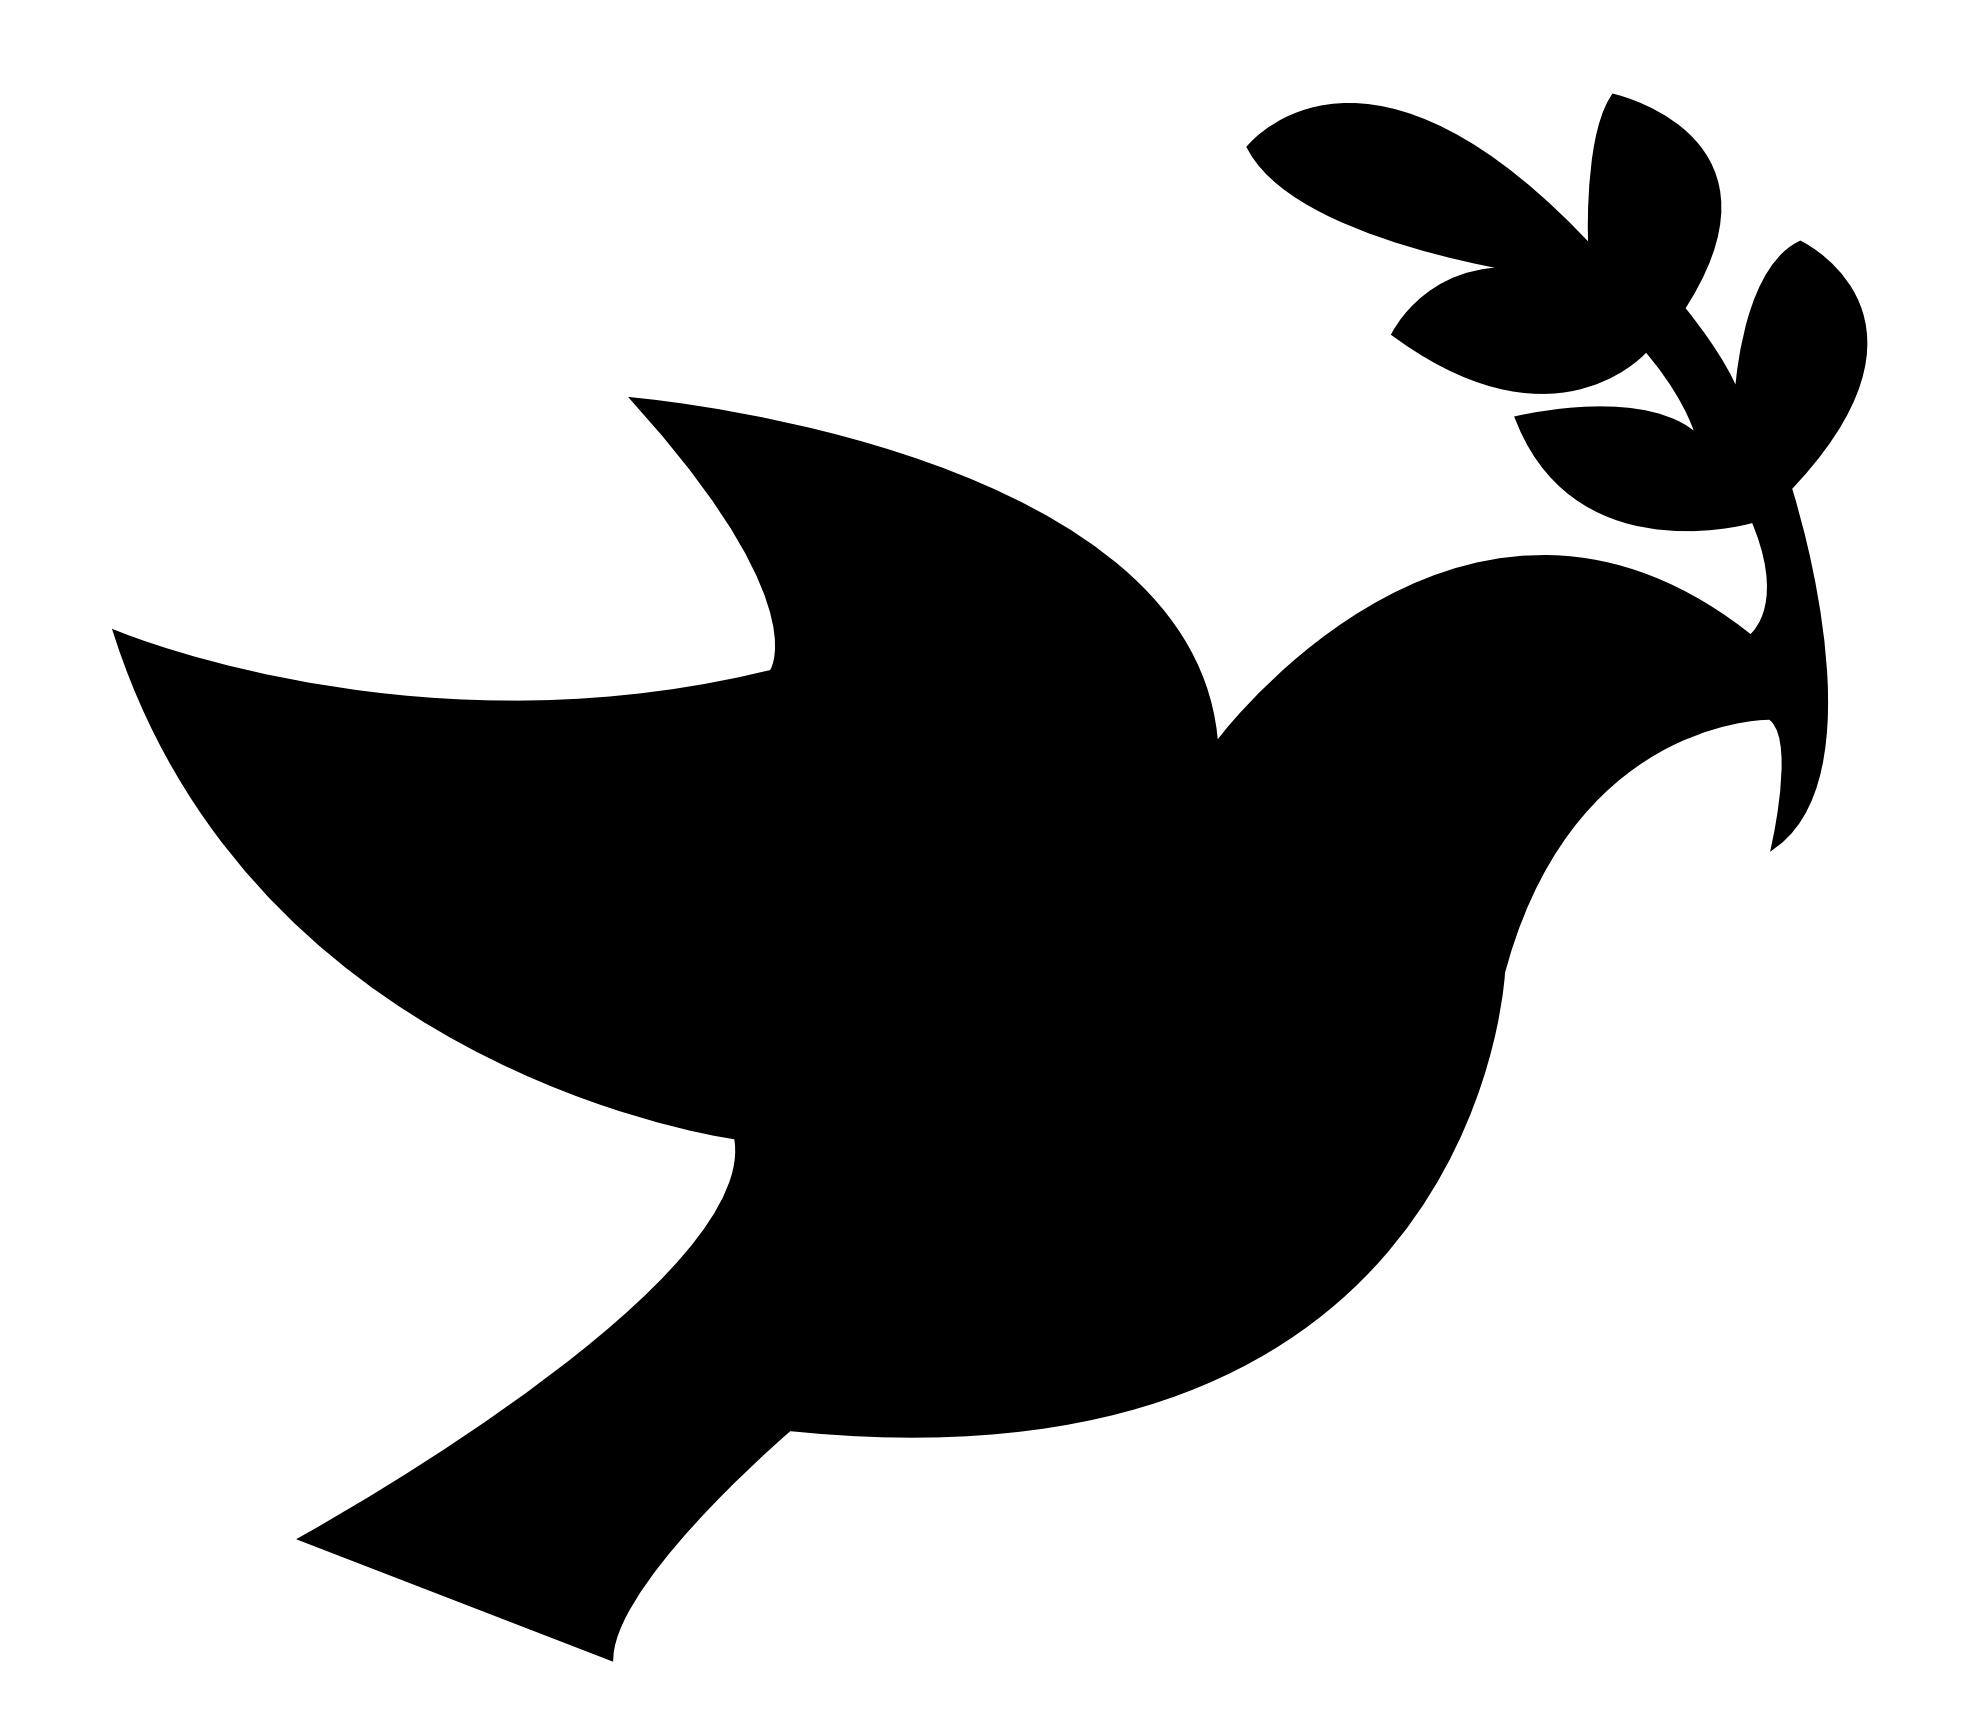 Peace transparent stickpng. Christian dove png free